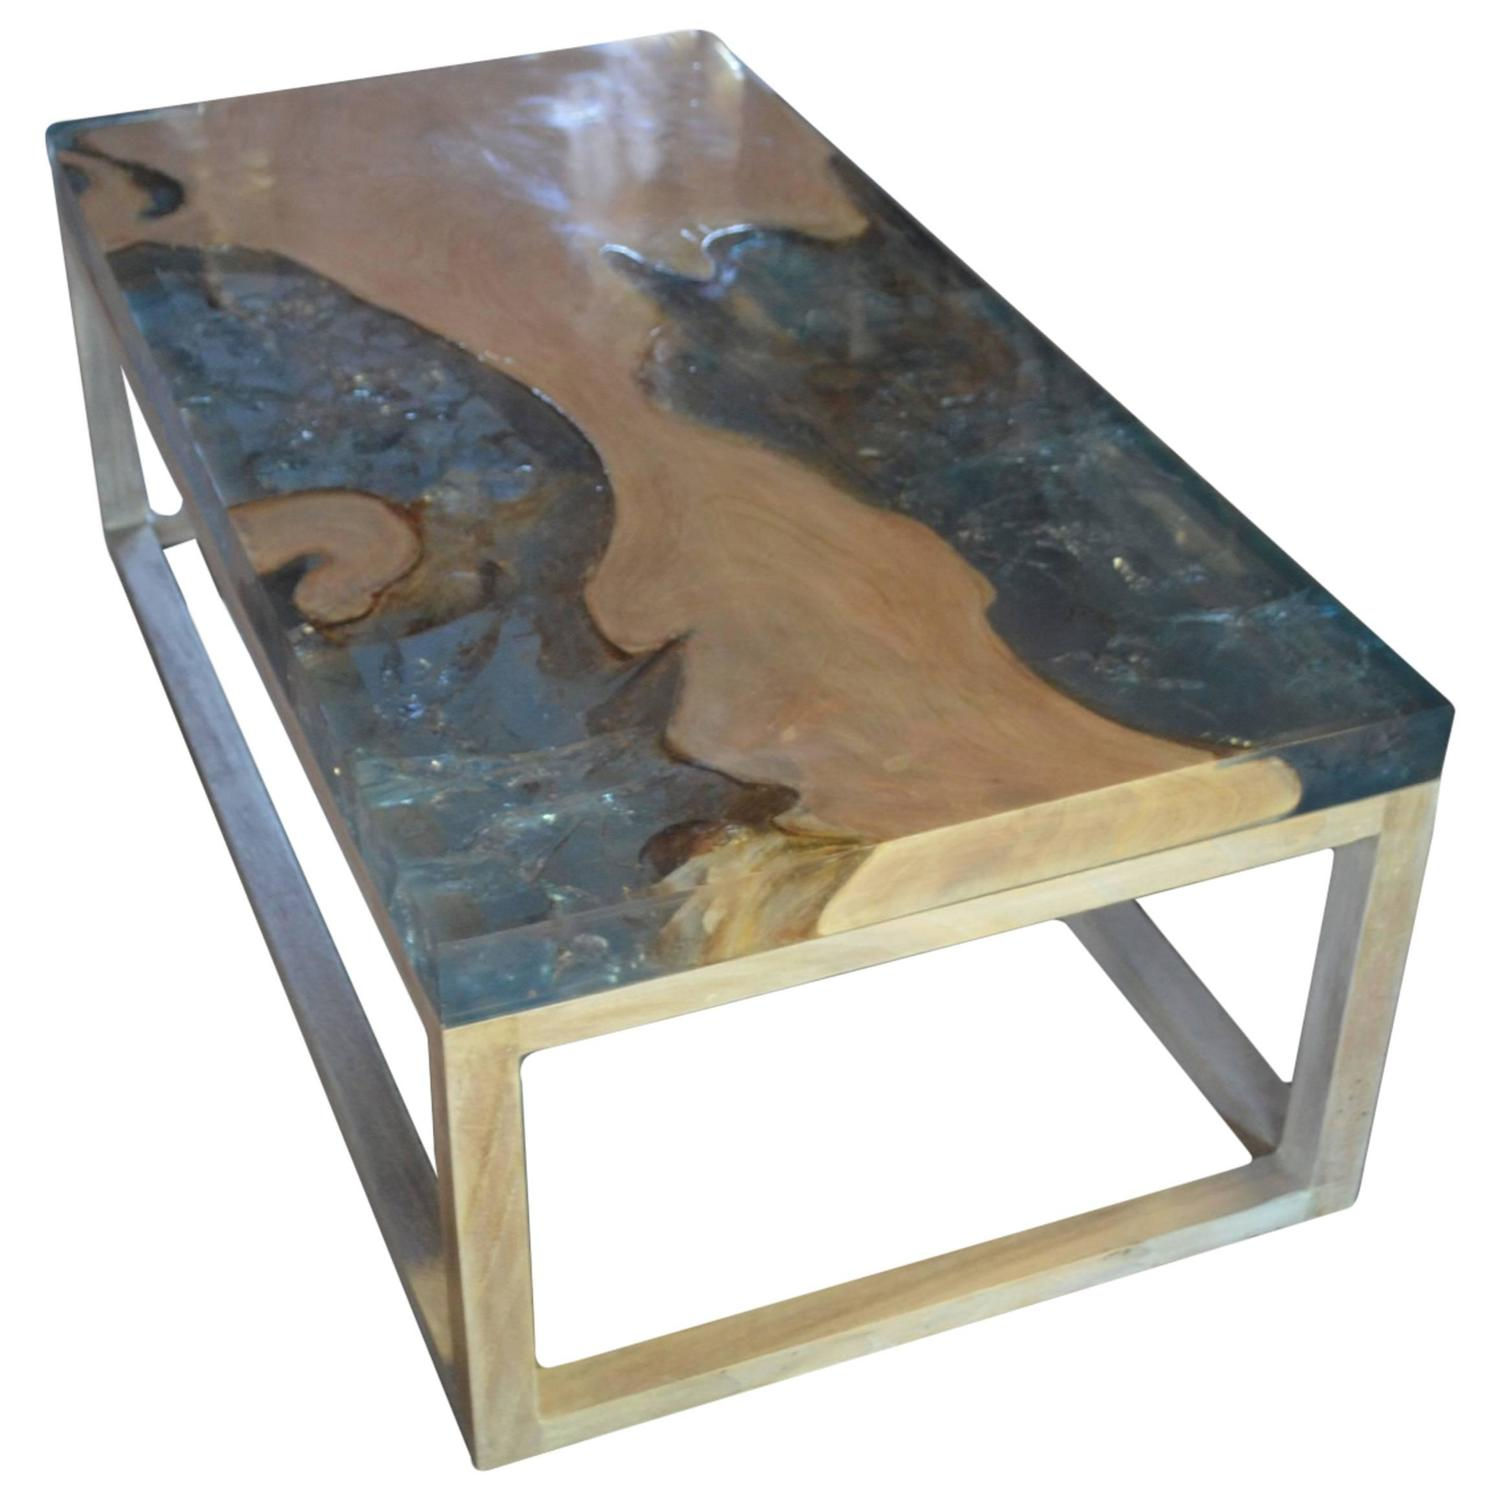 Vidaxl Coffee Table Teak Resin: St. Barts Teak Wood Coffee Table With Resin For Sale At